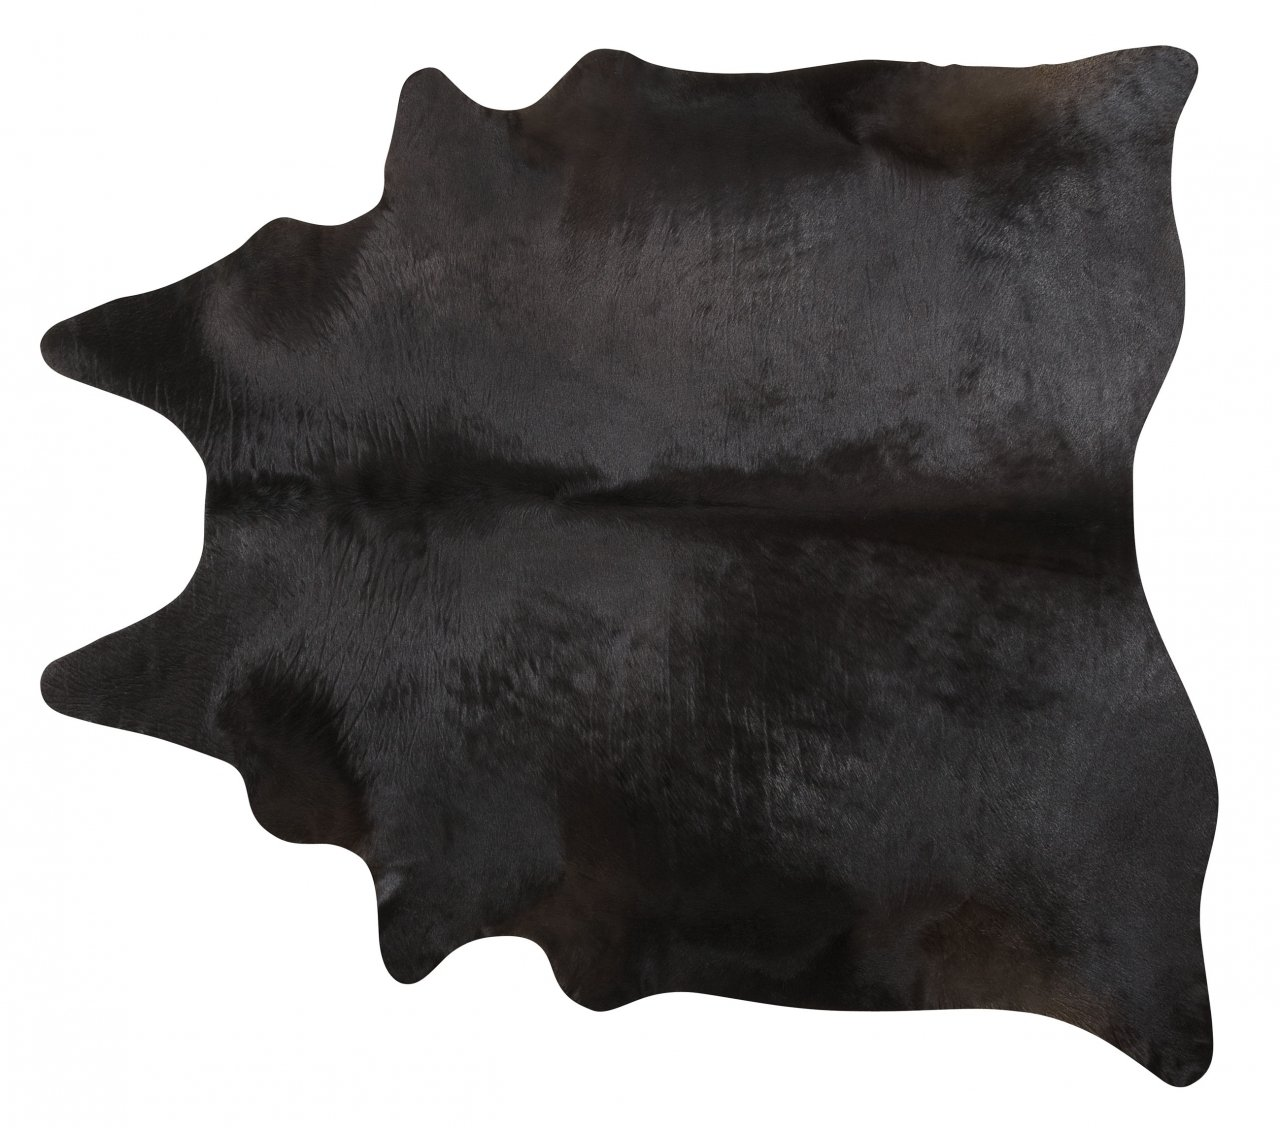 Black Brazilian Cowhide Rug Cow Hide Area Rugs - Size XXL